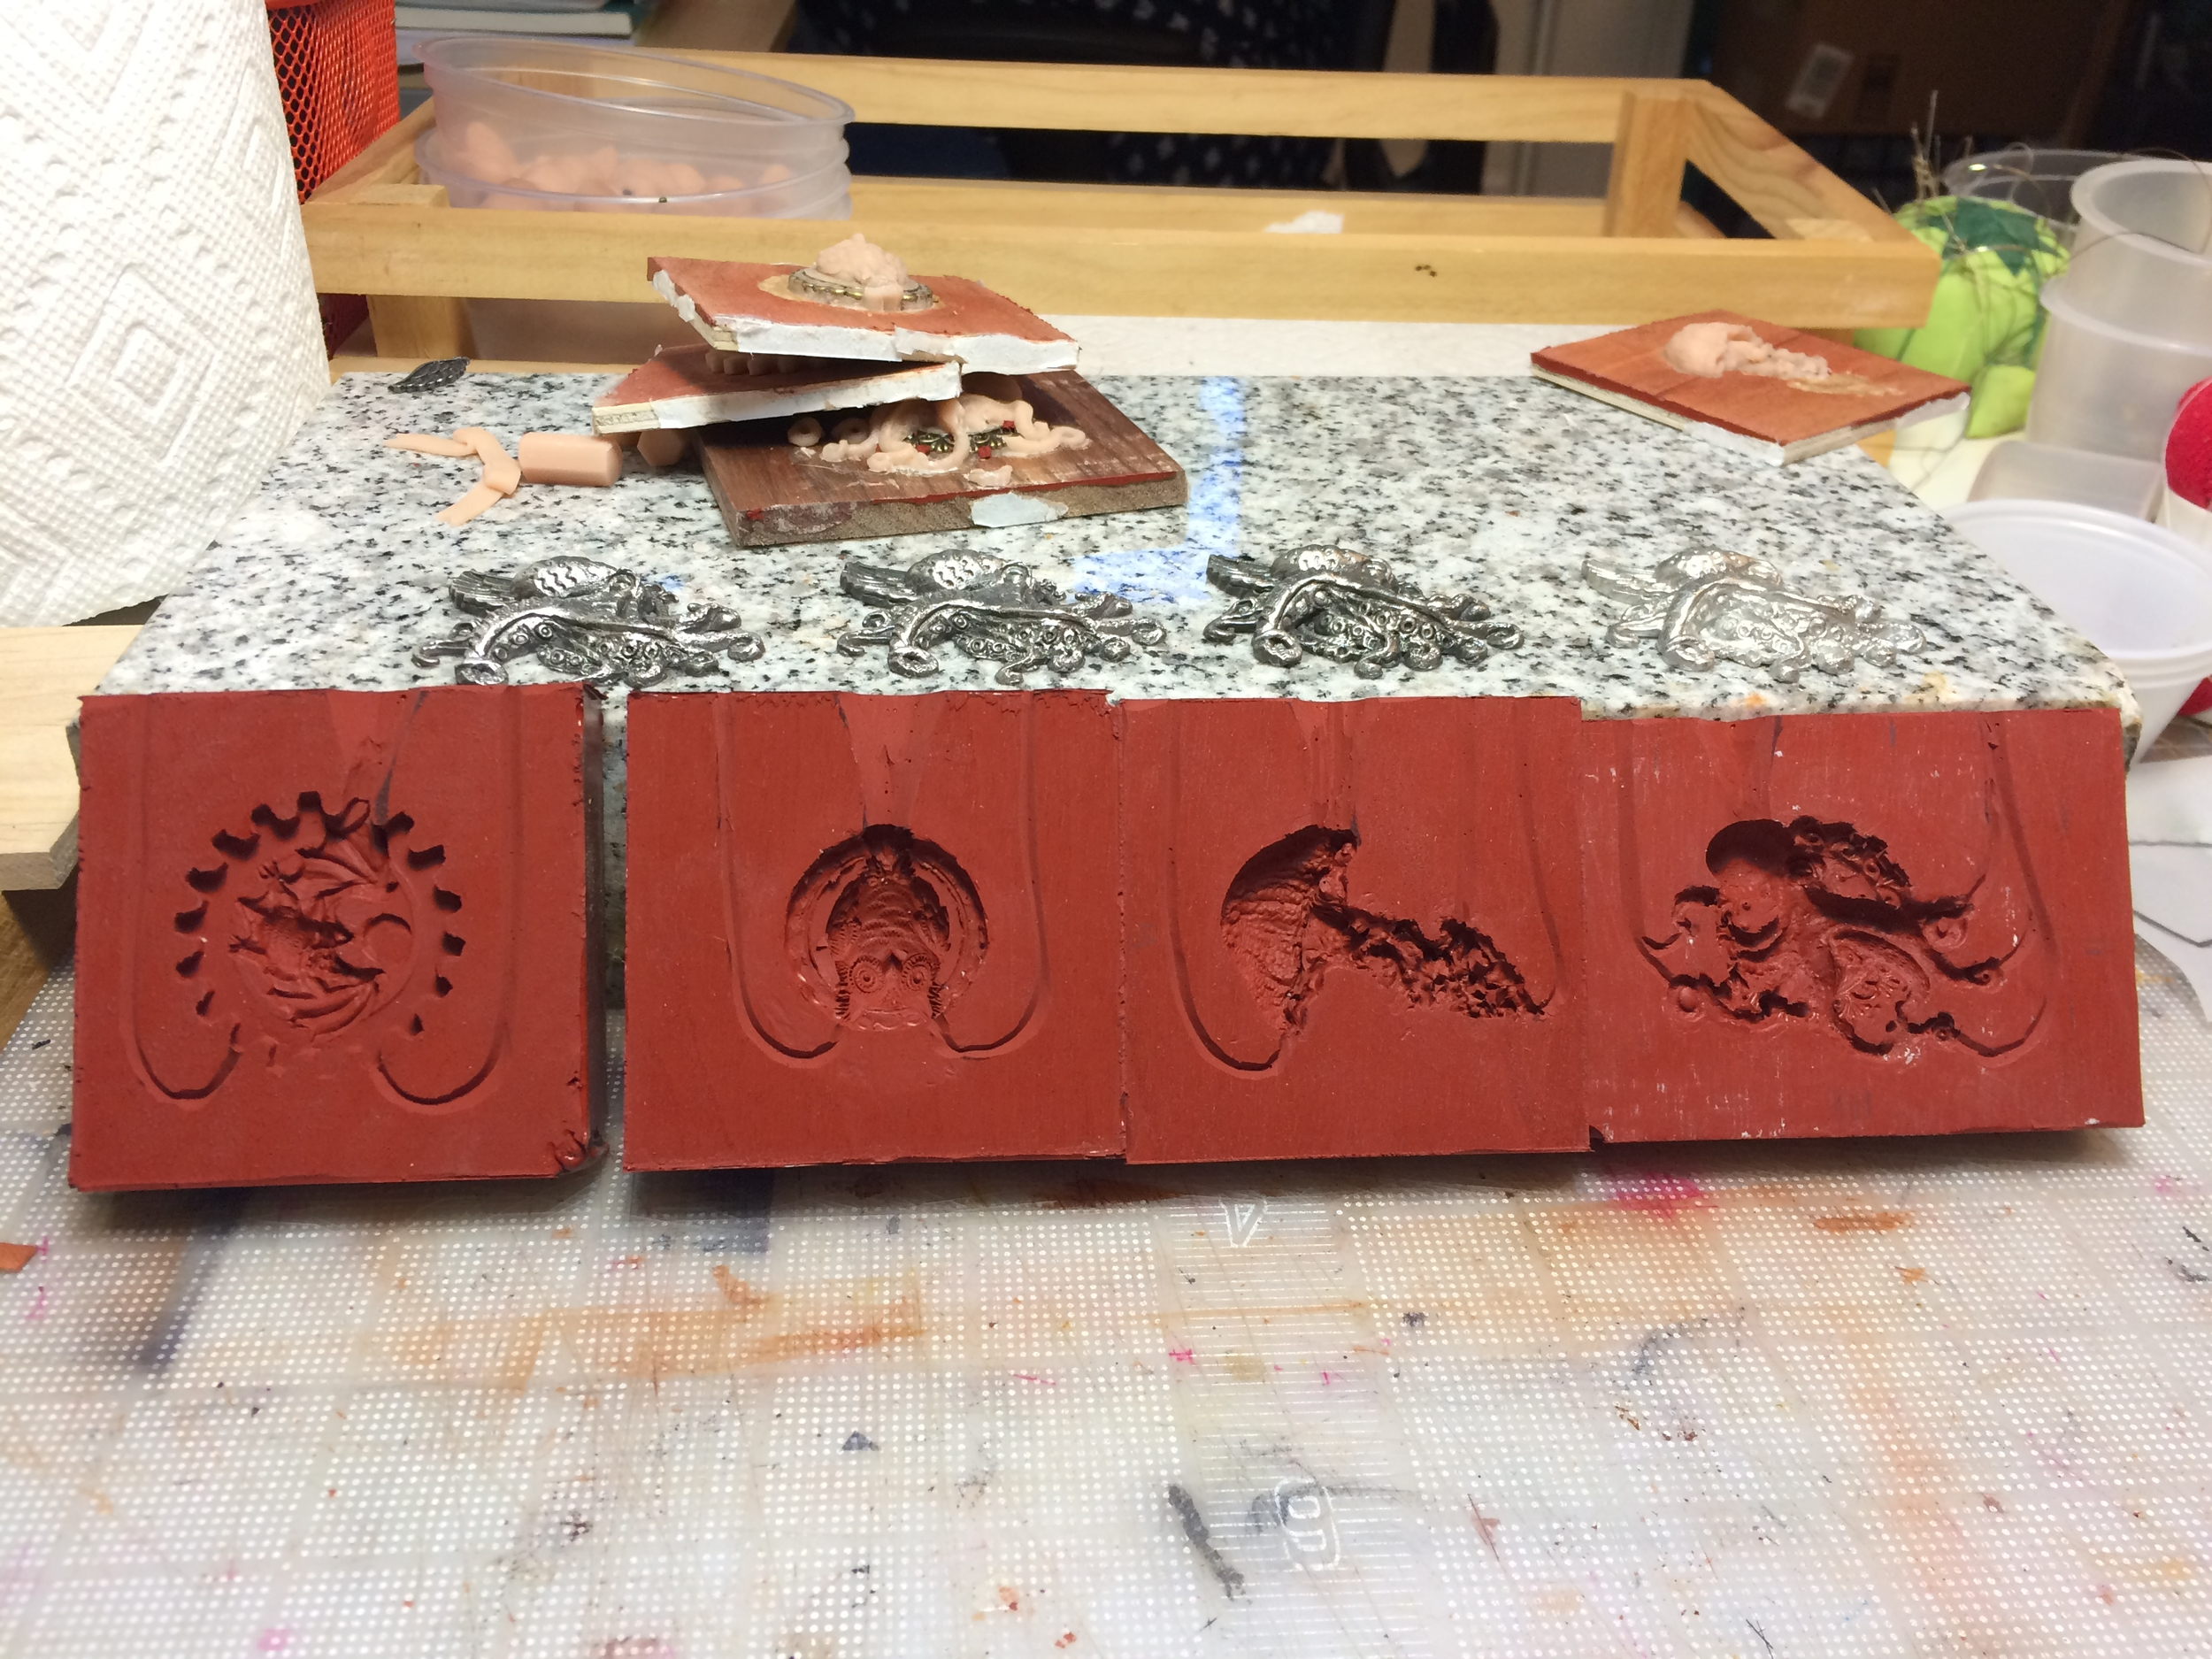 Making silicone molds from the sculpts.